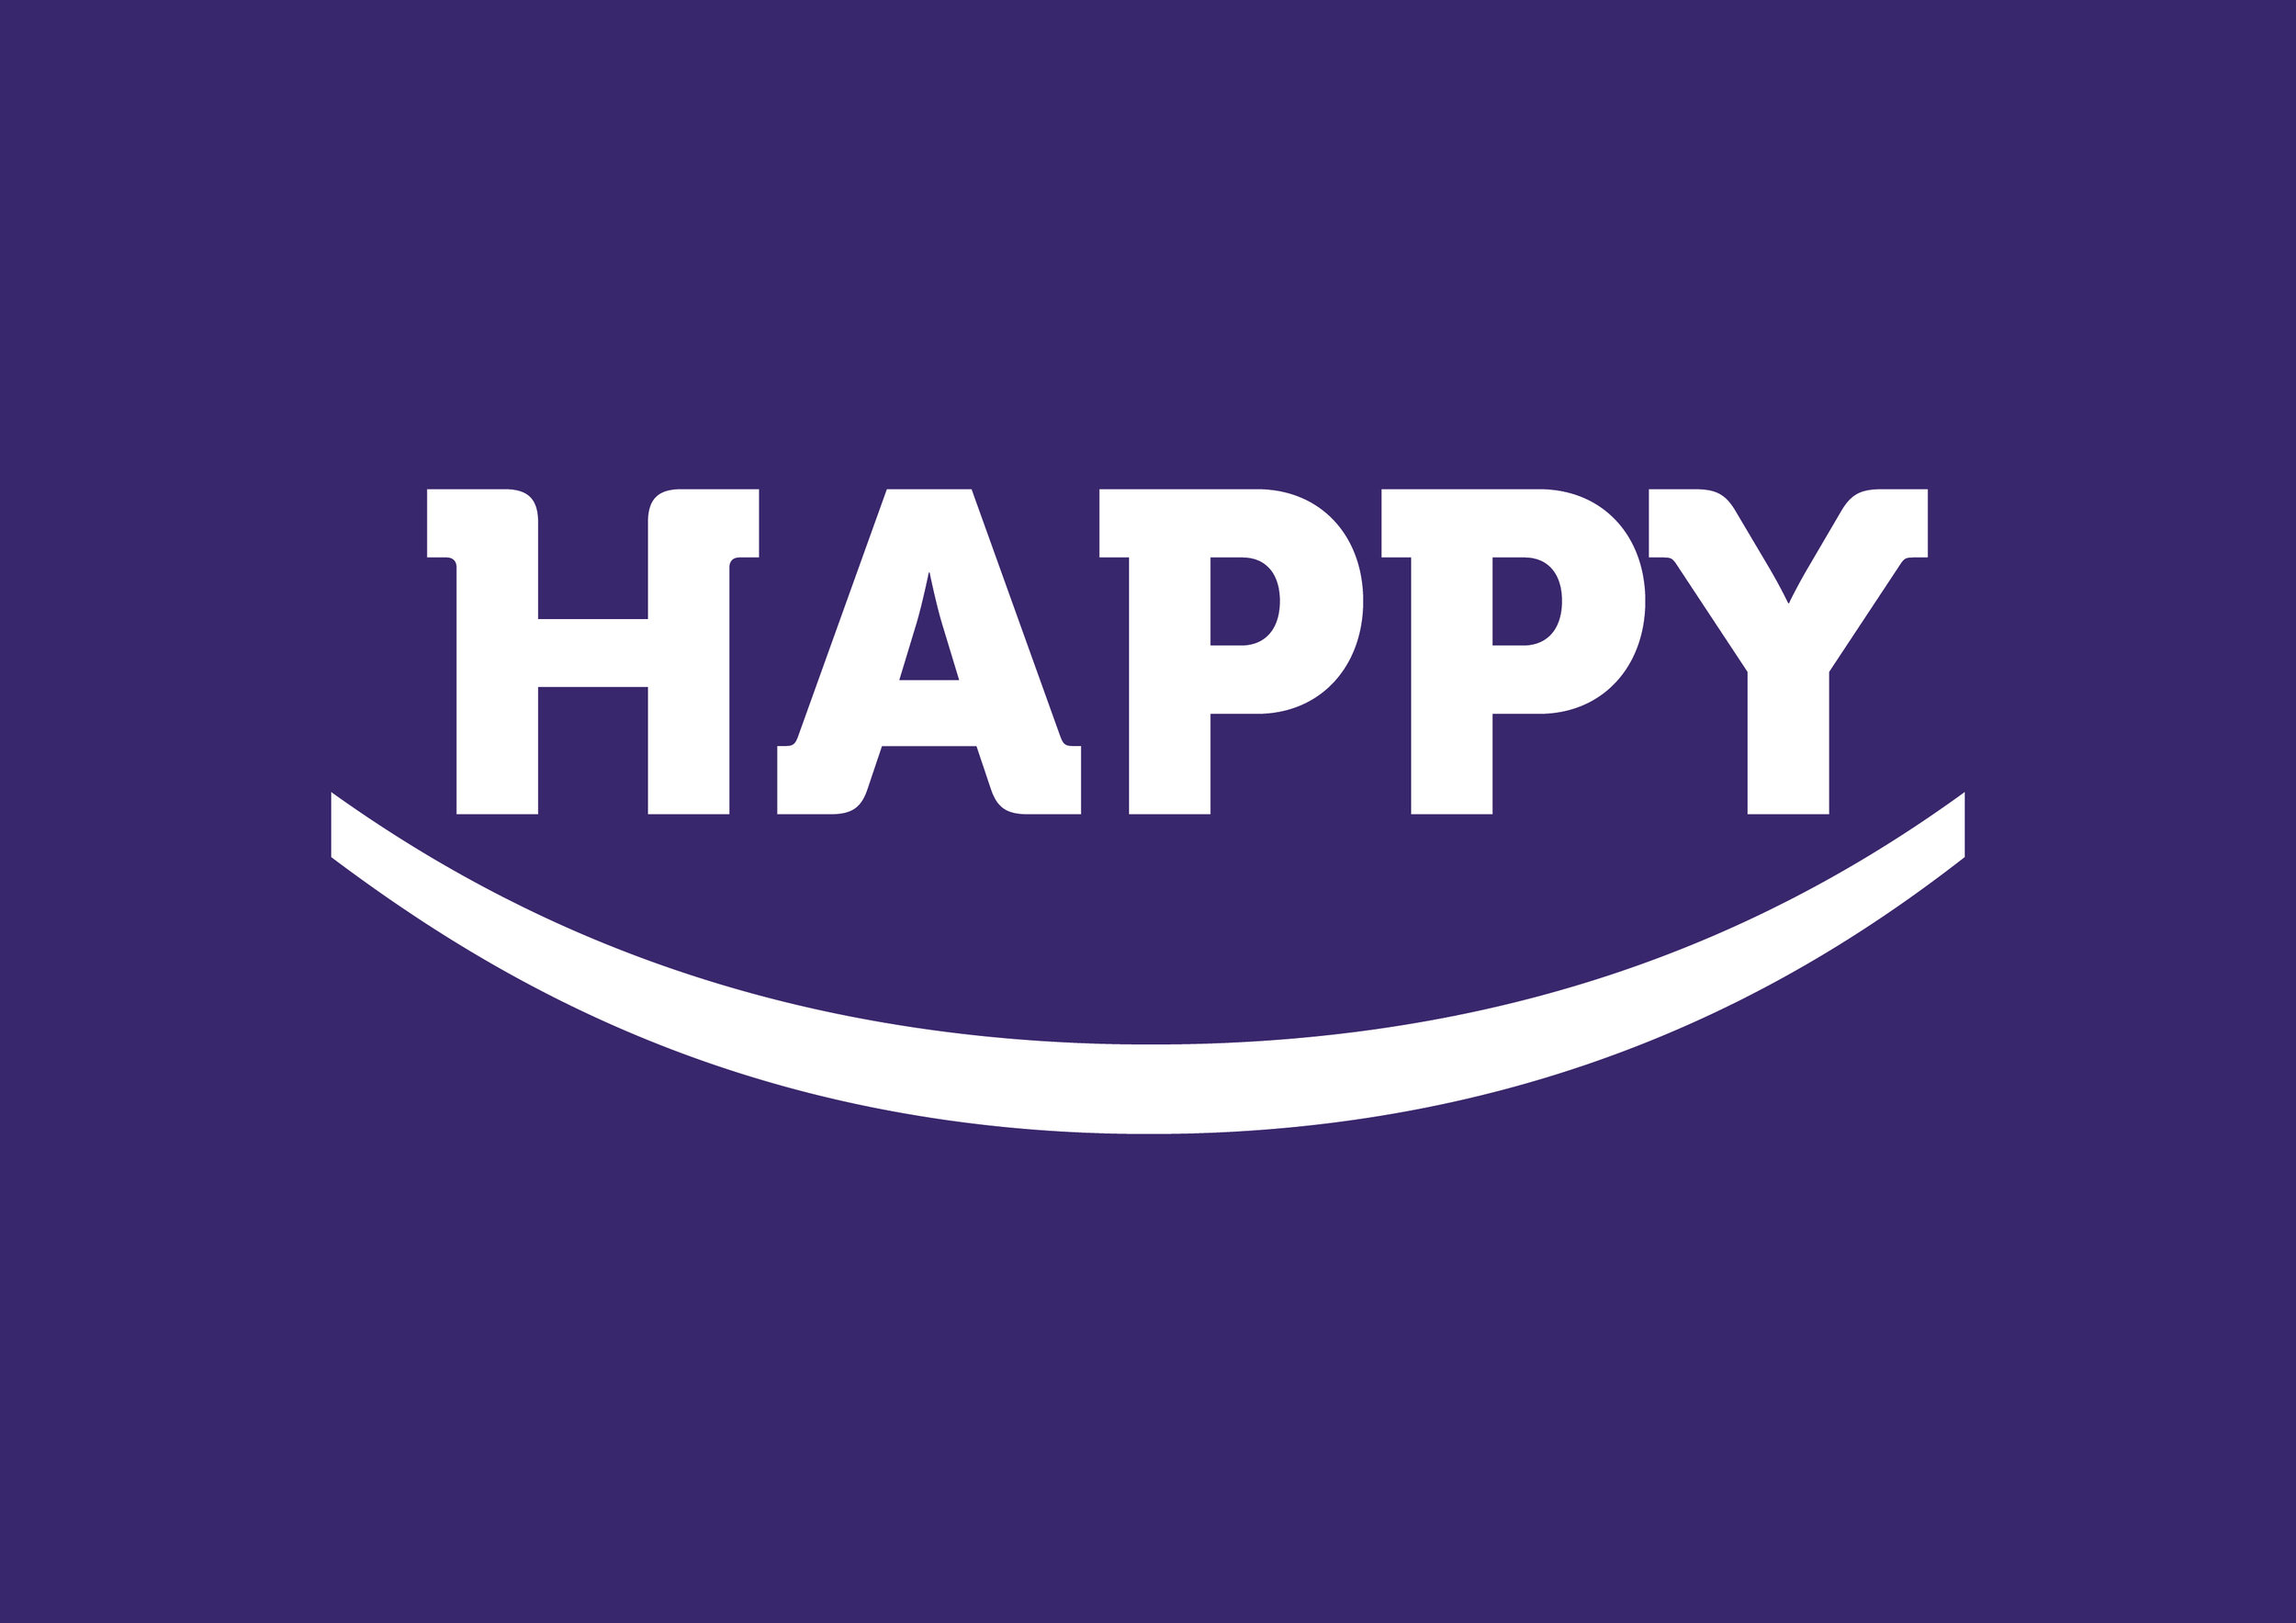 Happy Logo_02.jpg